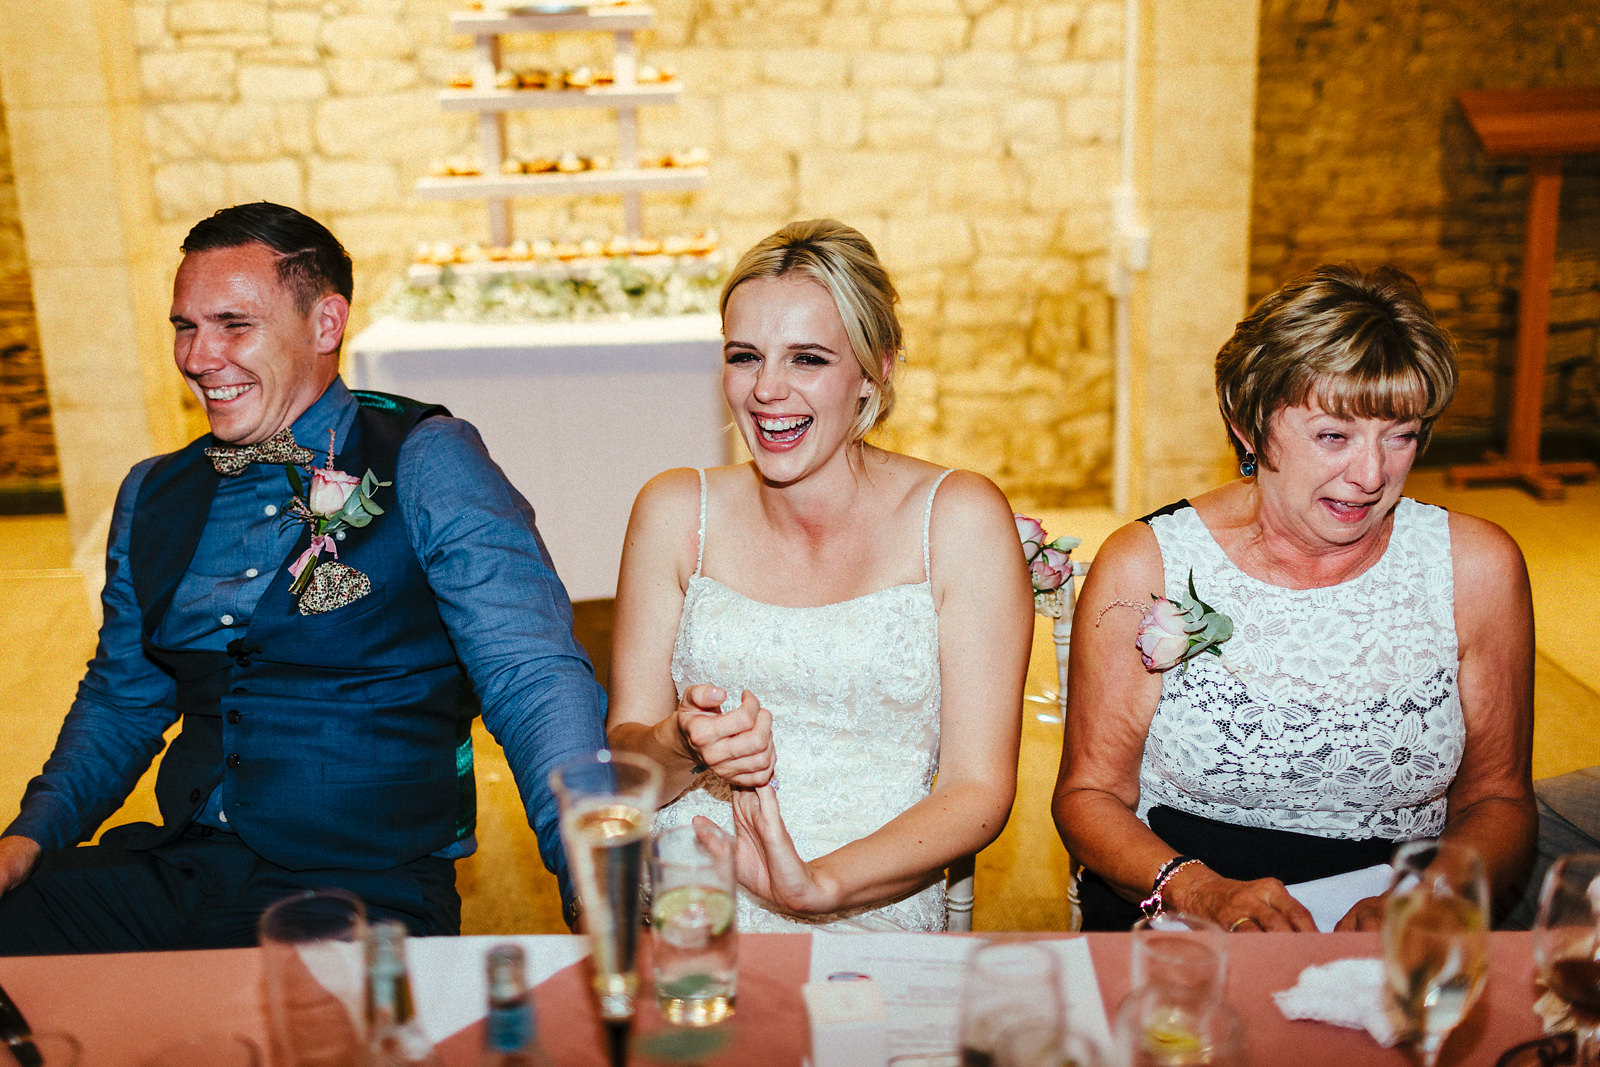 The Great the barn wedding speeches